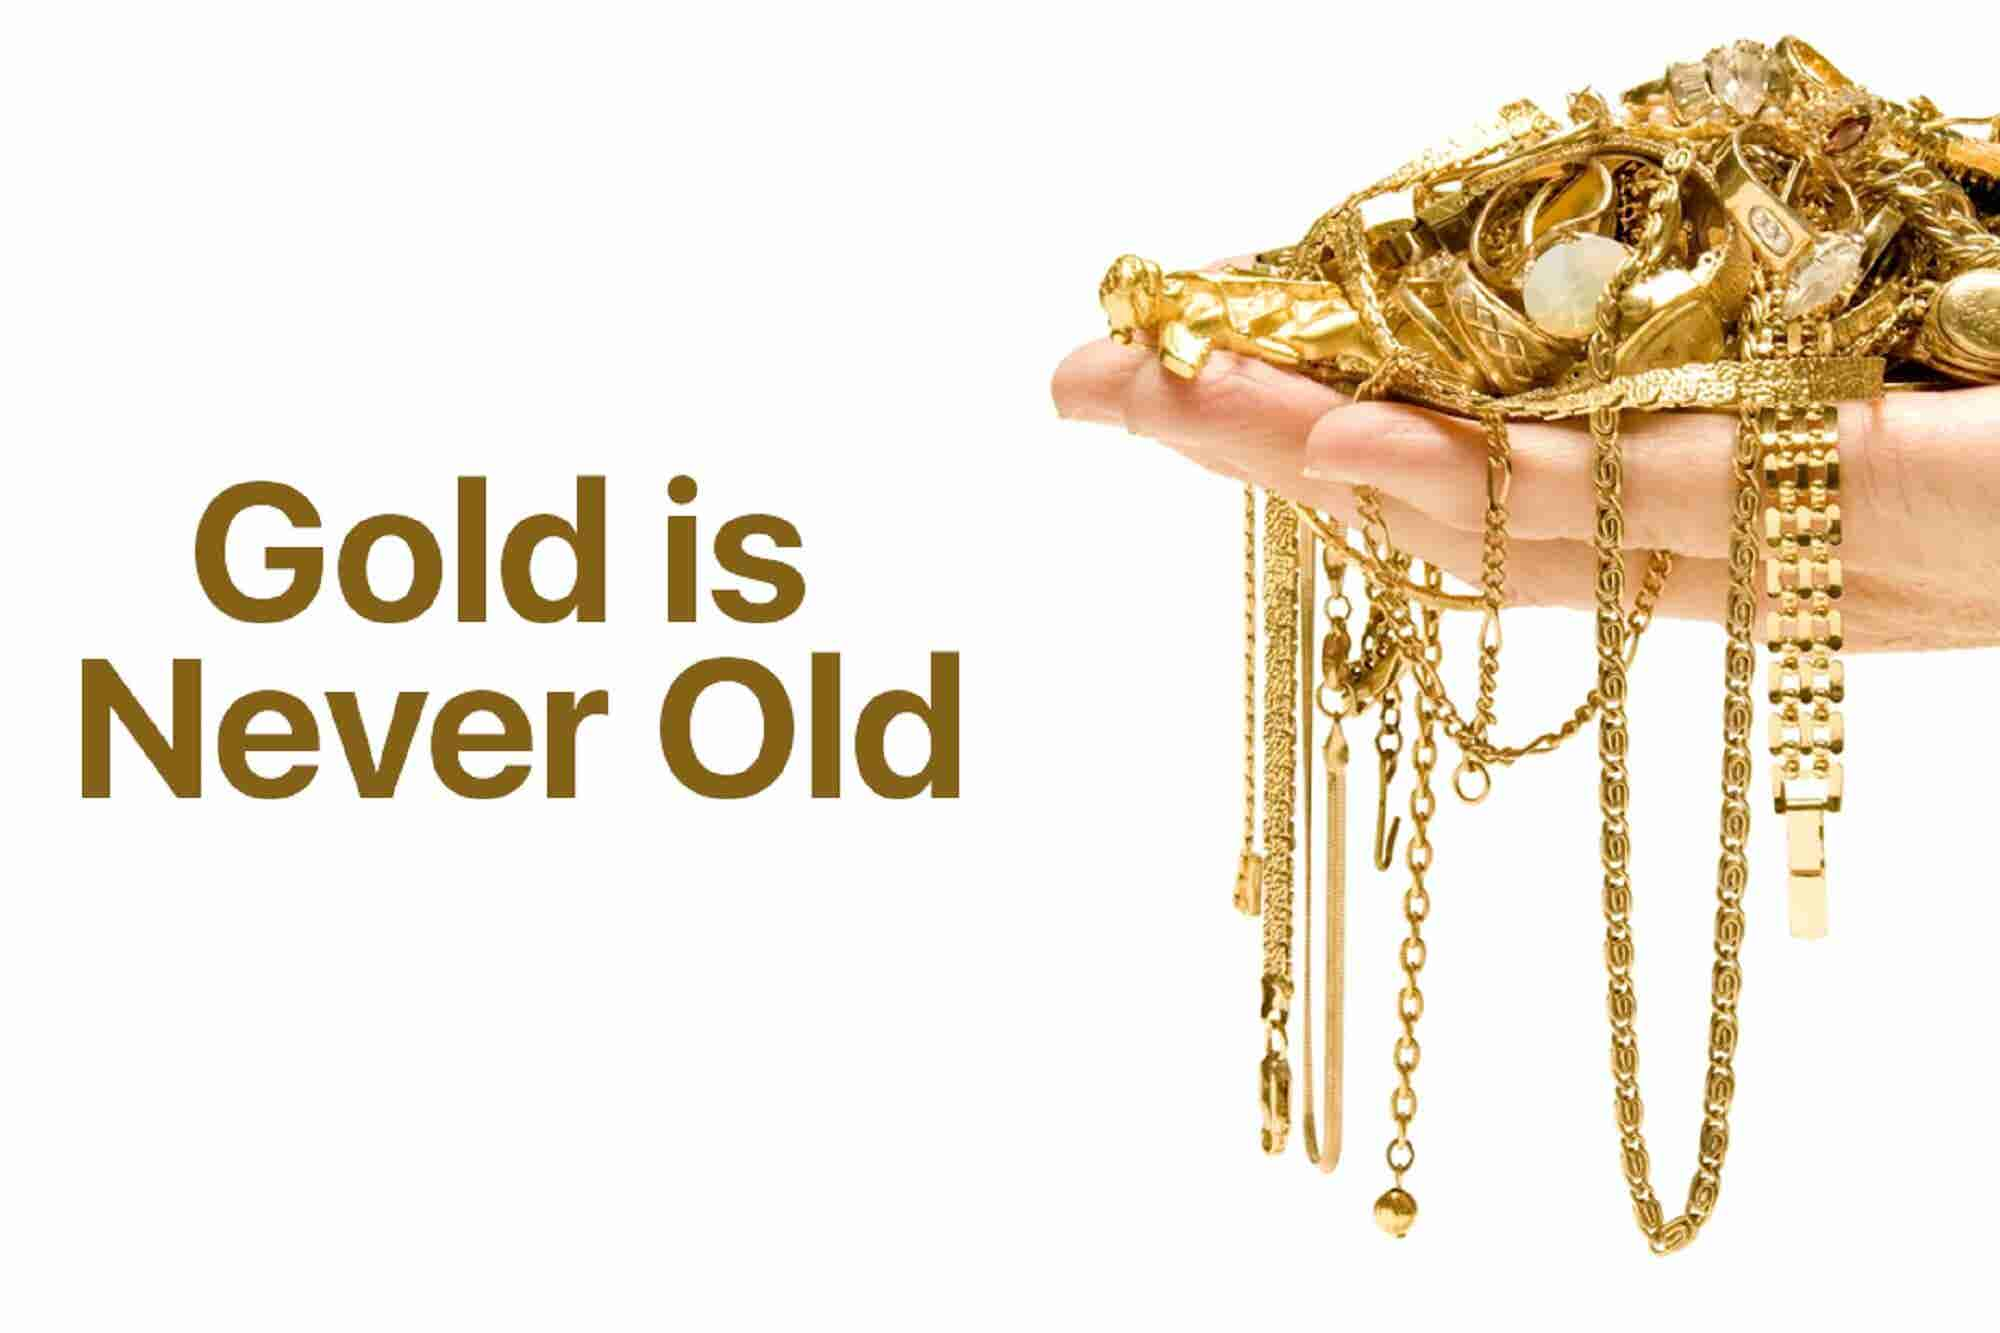 #InvestmentSpecial: Looking to Invest in Gold? Here are 4 Tips for You